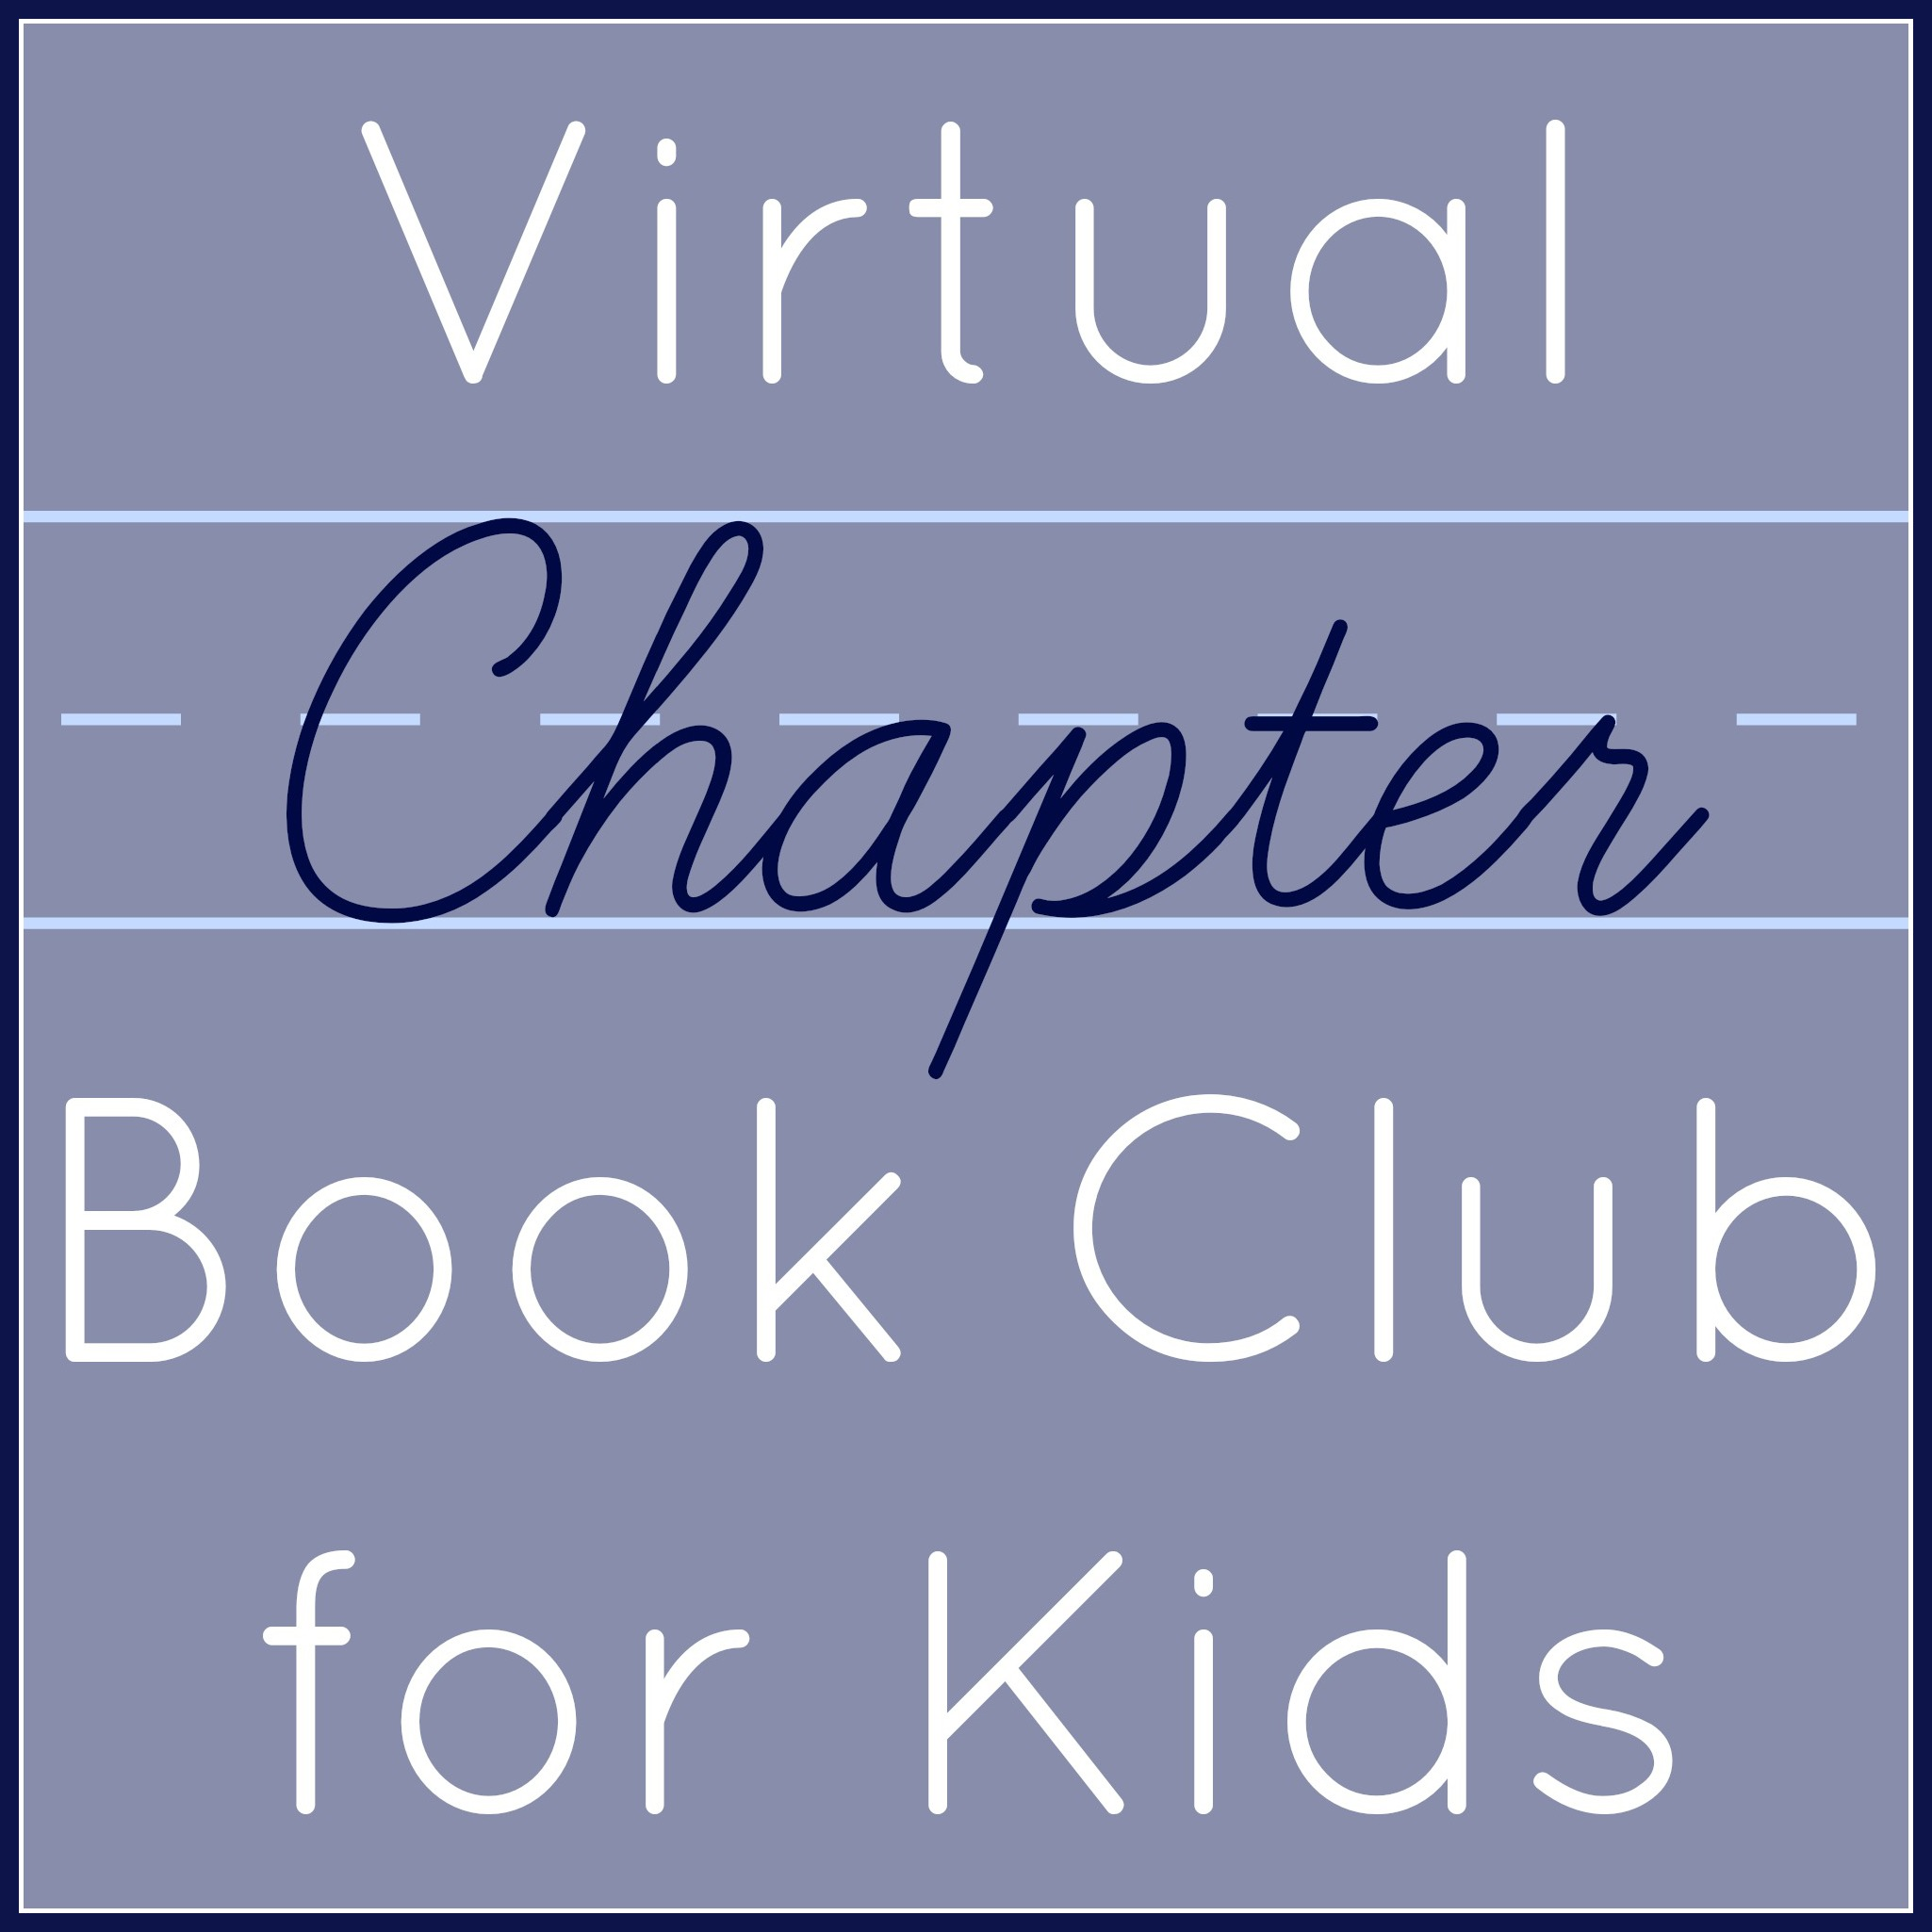 Virtual Chapter Book Club for Kids